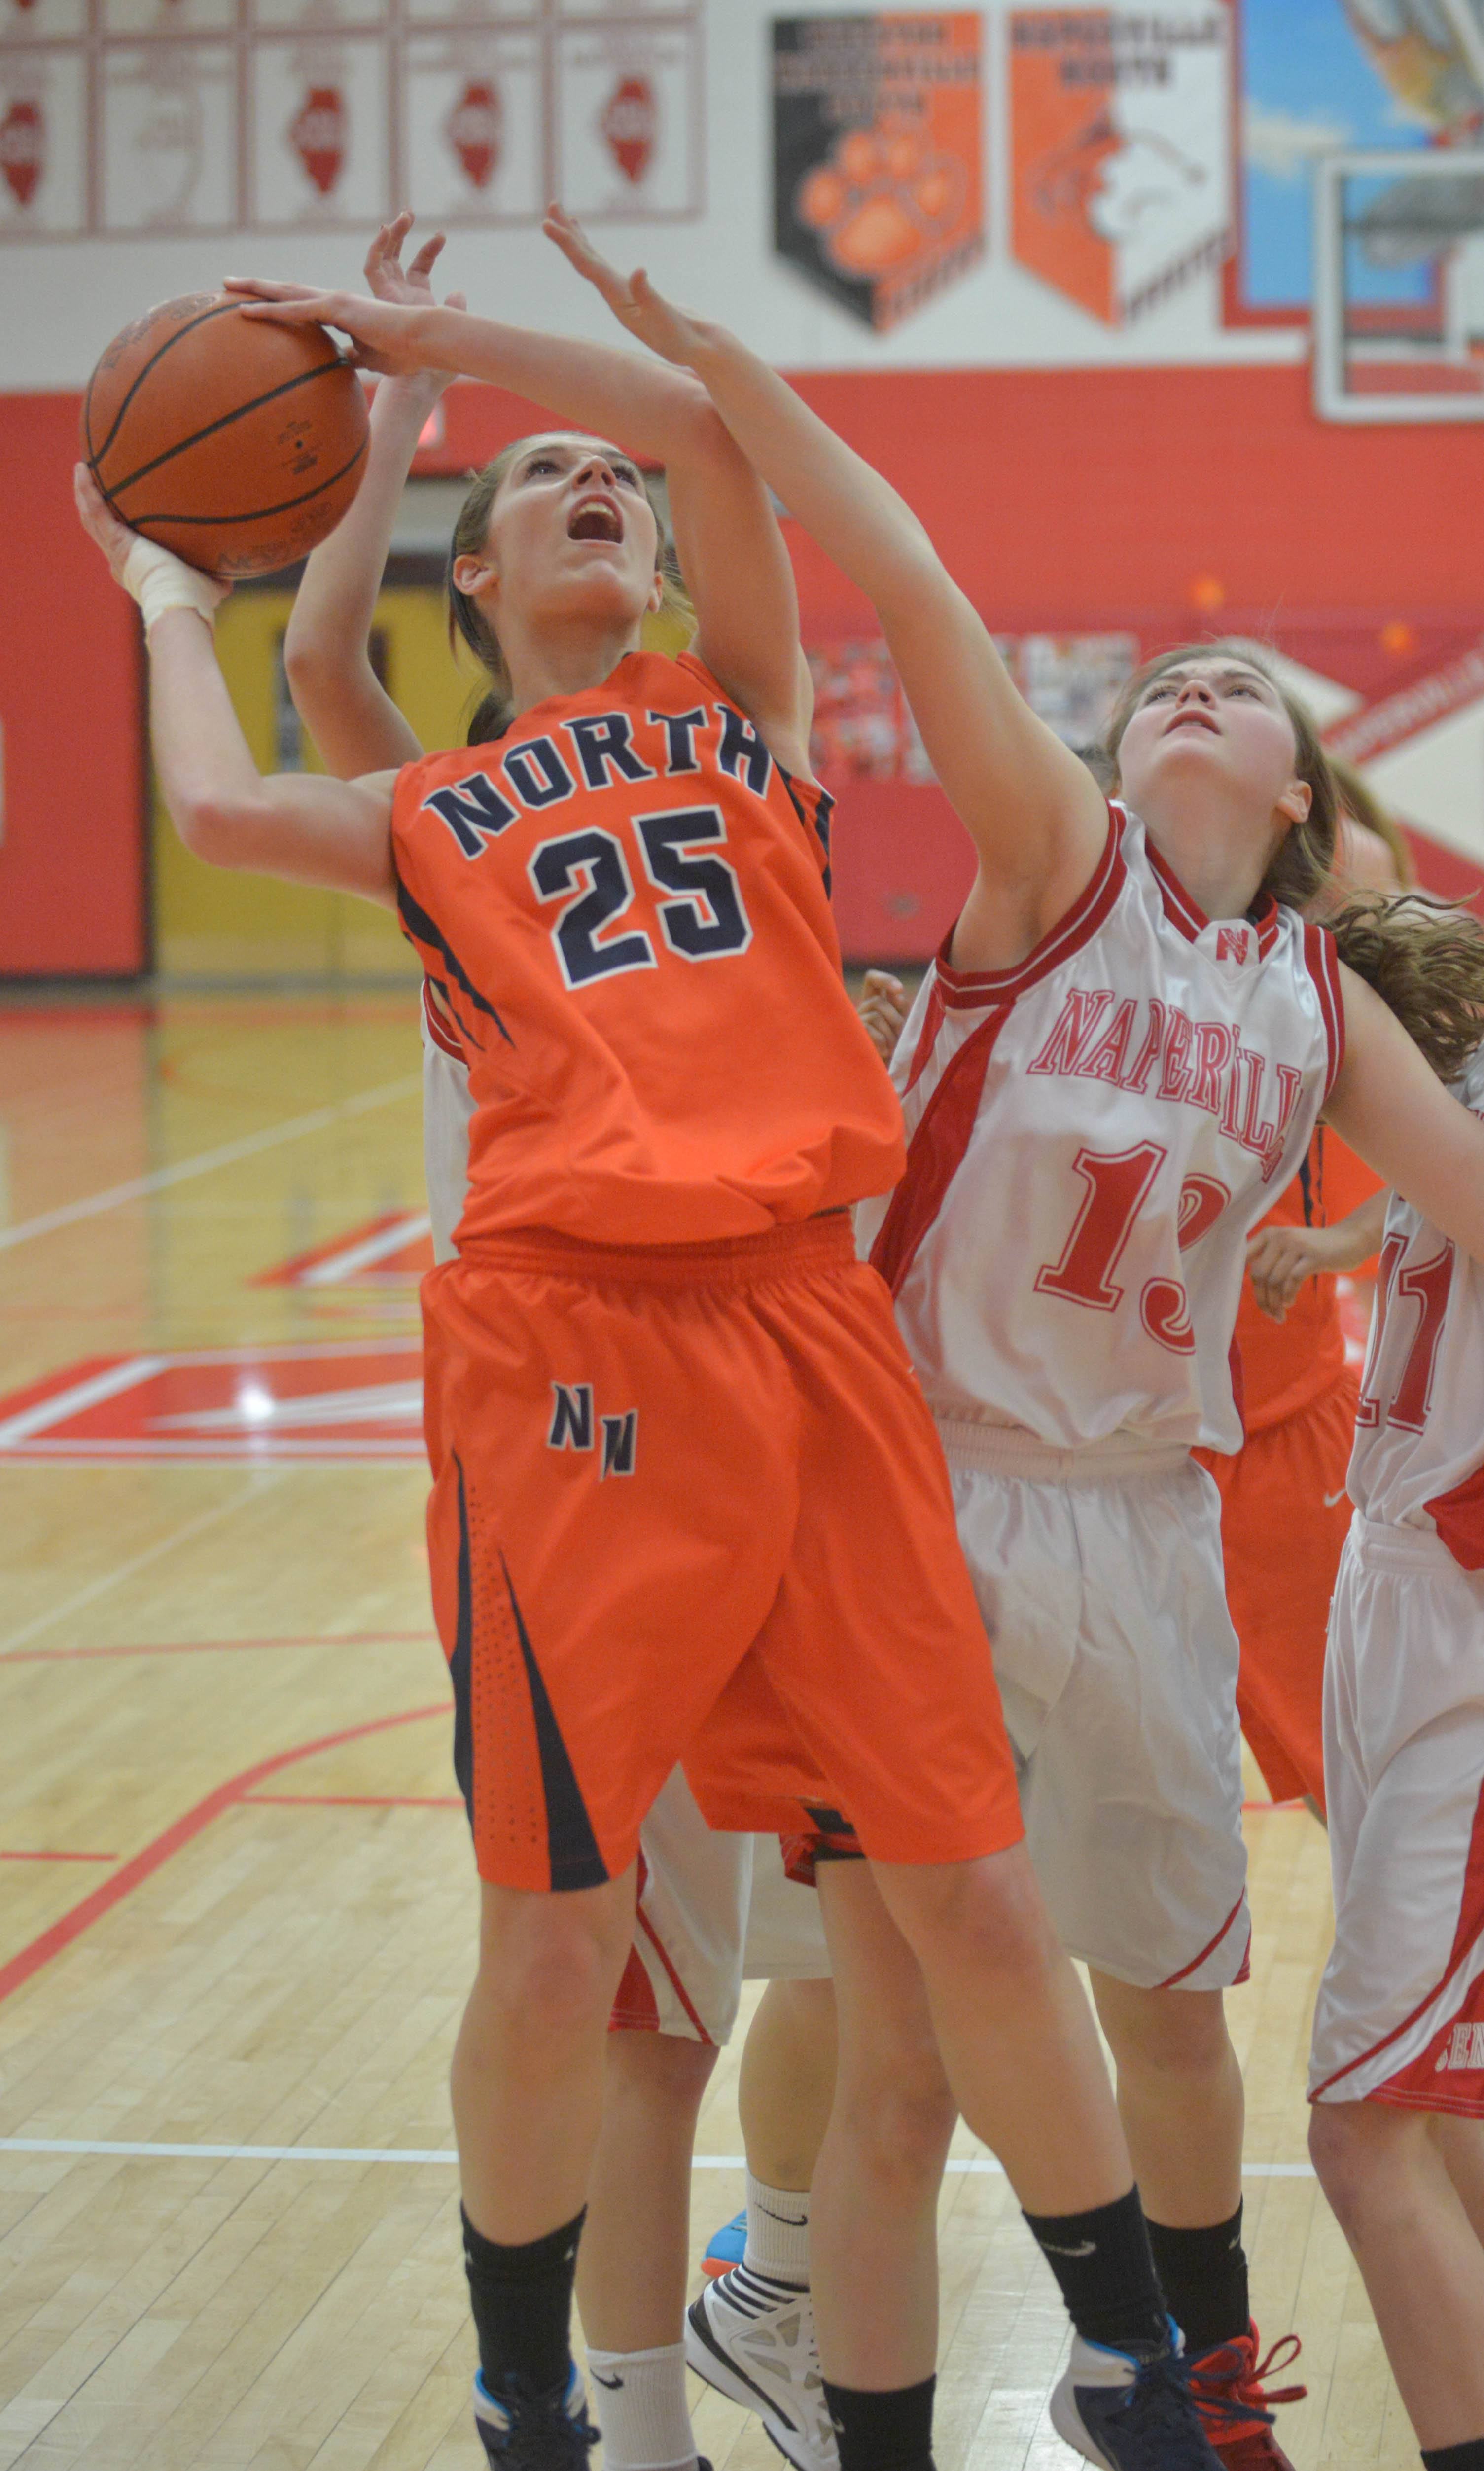 (25) Kayla Sharples of Naperville North and (13) Katie Moran of Naperville Central give it their all during the Naperville North at Naperville Central girls basketball game Thursday.